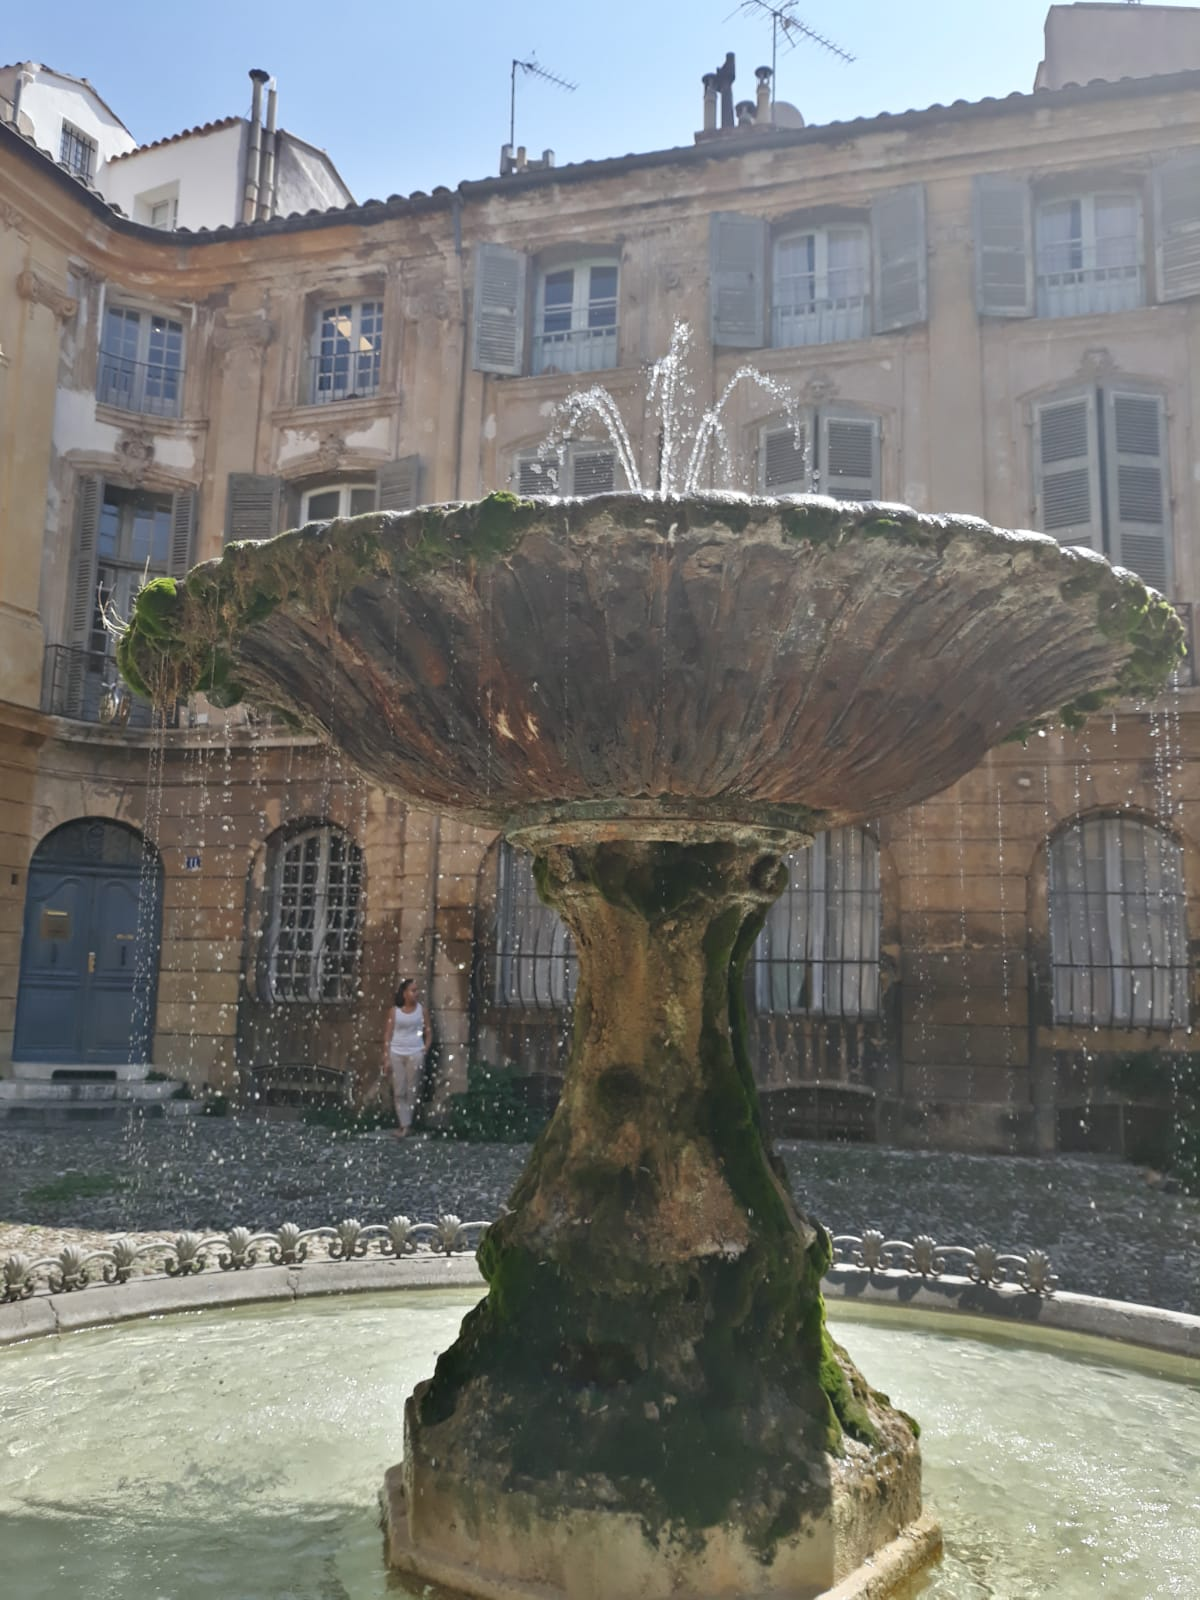 Marseilles, a beautiful fountain in the middle of the city